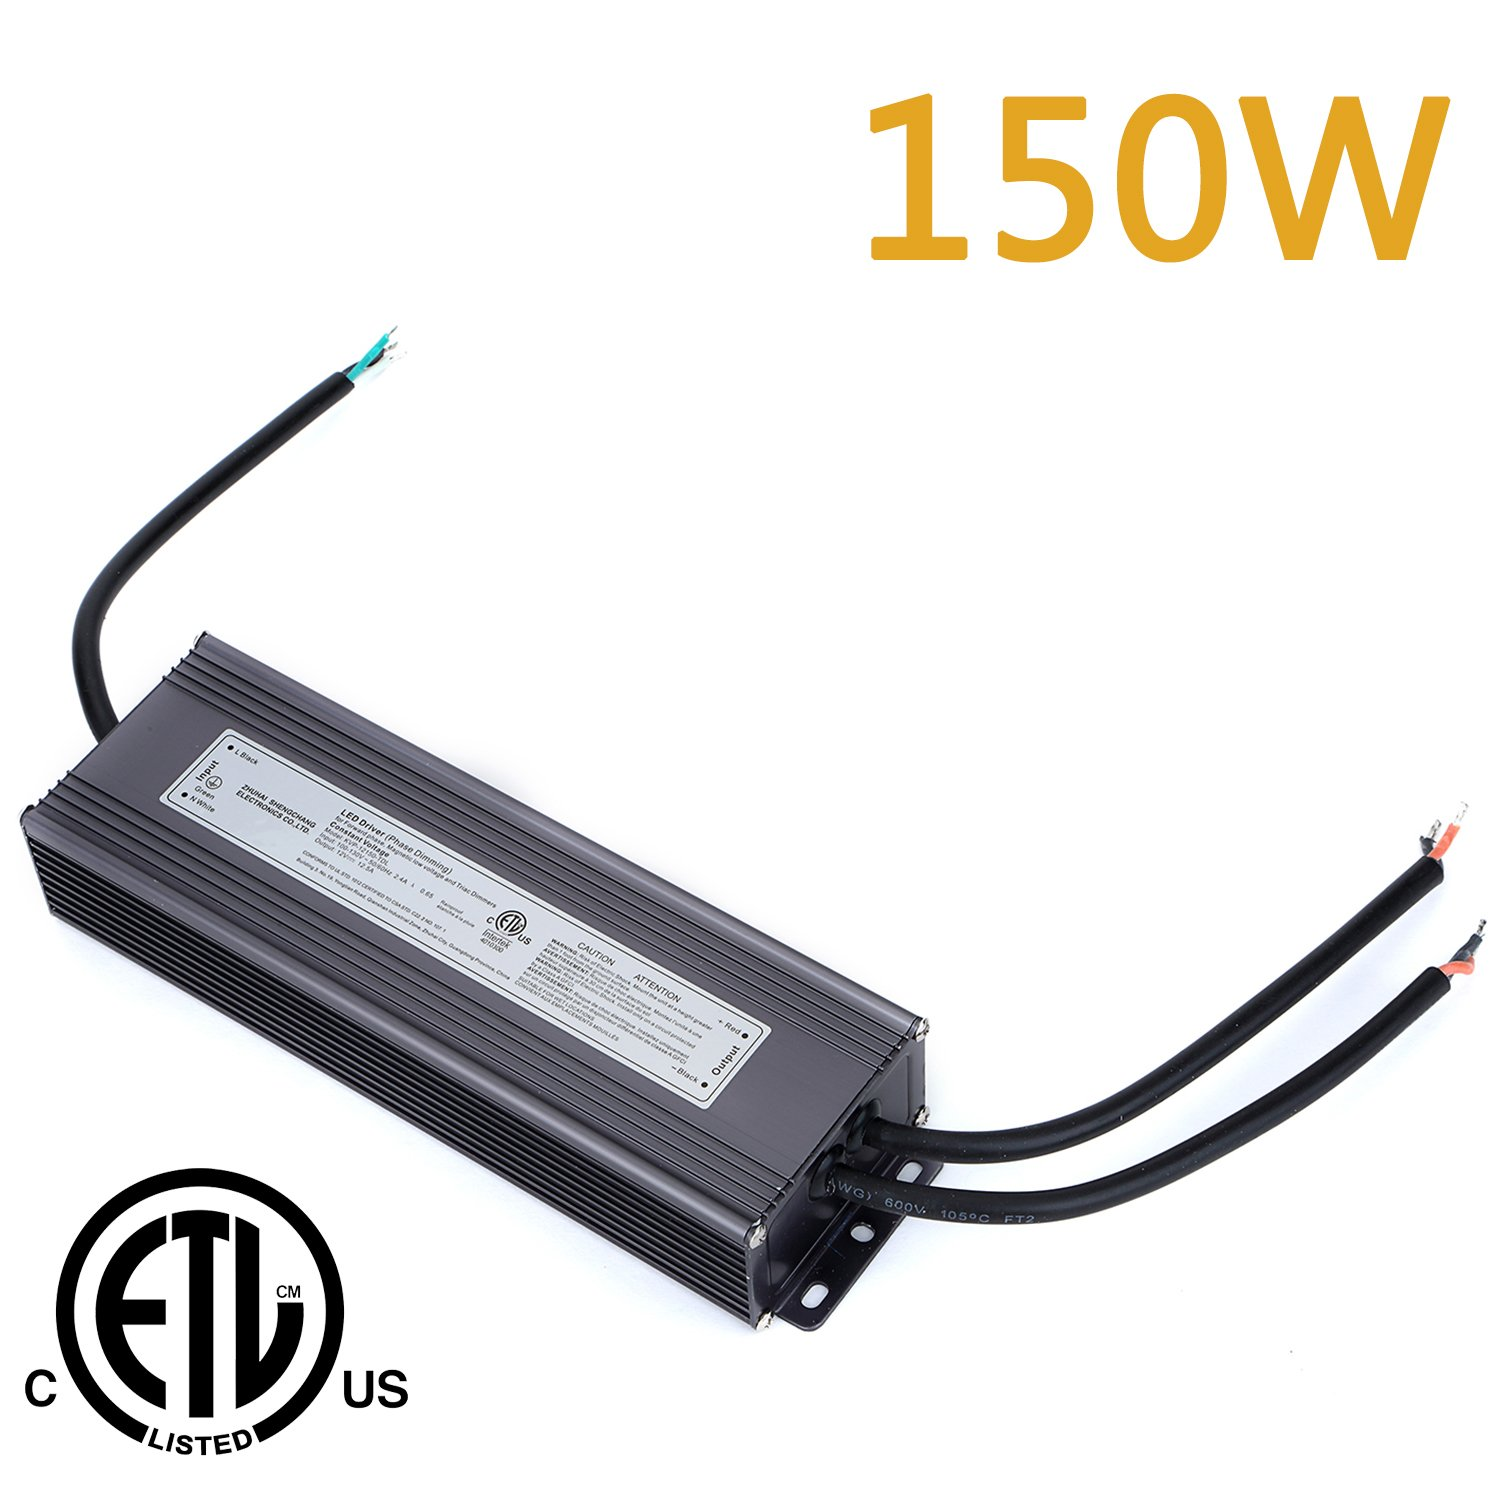 Weanas 150W LED Power Supply Driver Transformer Adapter ETL Listed 110V AC to 12V DC 12.5A Current Output Constant Voltage for LED Light Bulb low voltage and Triac Dimmers (150W)